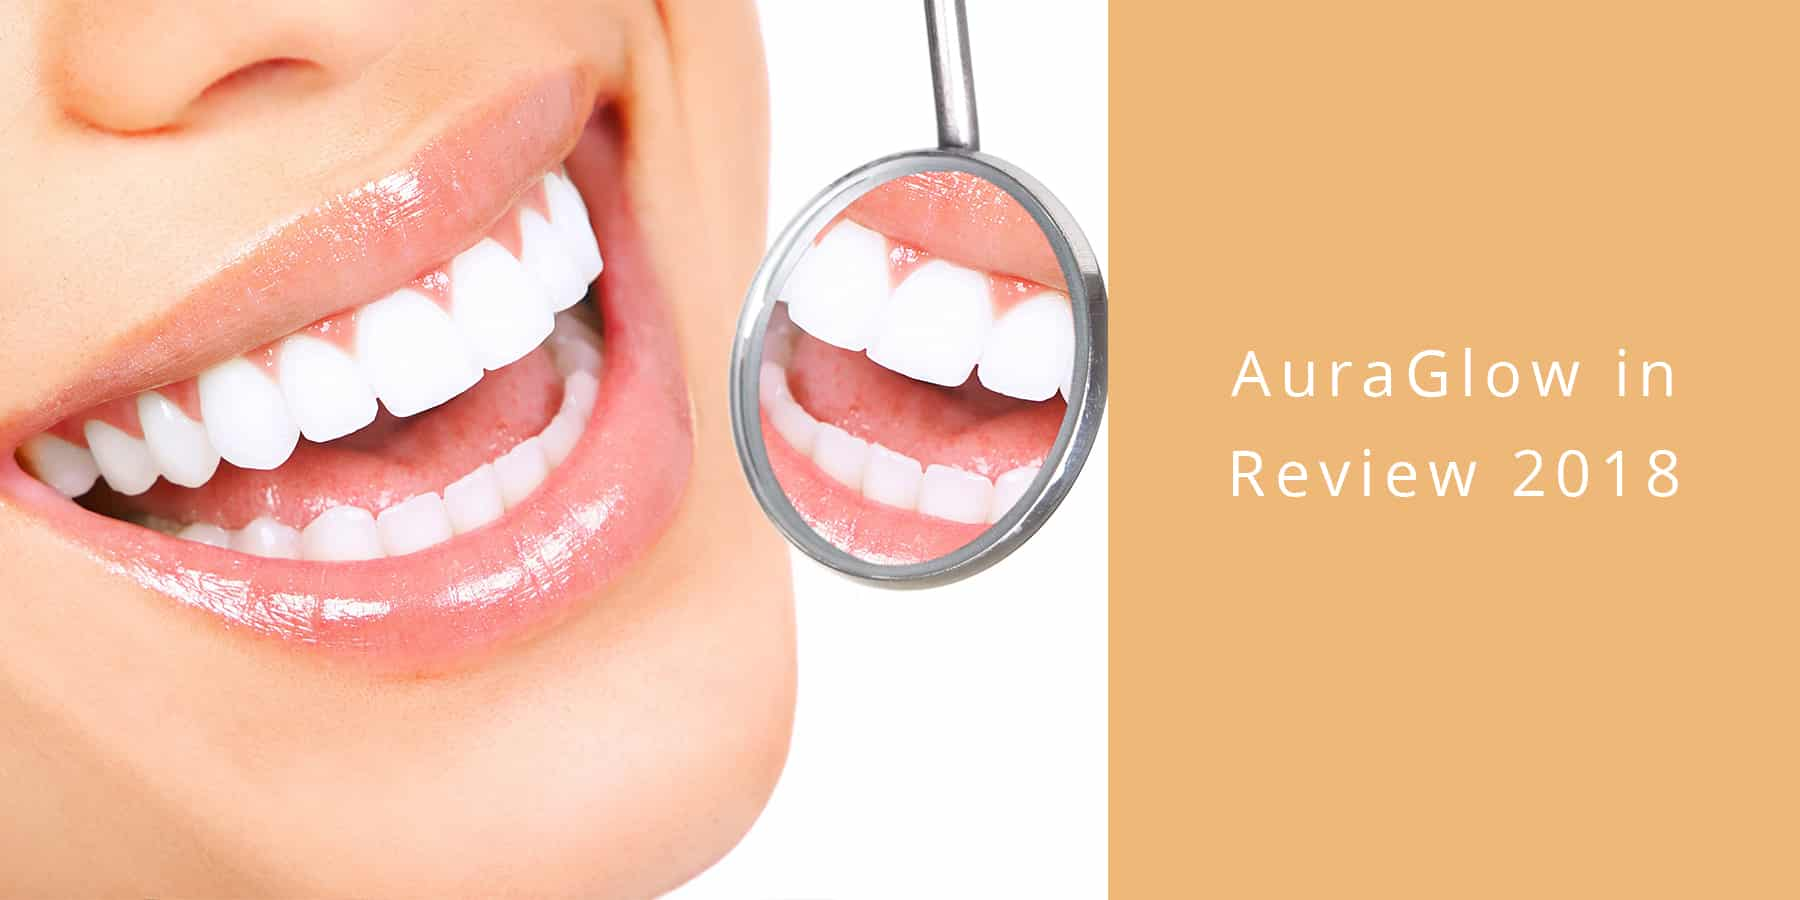 Means for teeth whitening: review, effectiveness, comparison